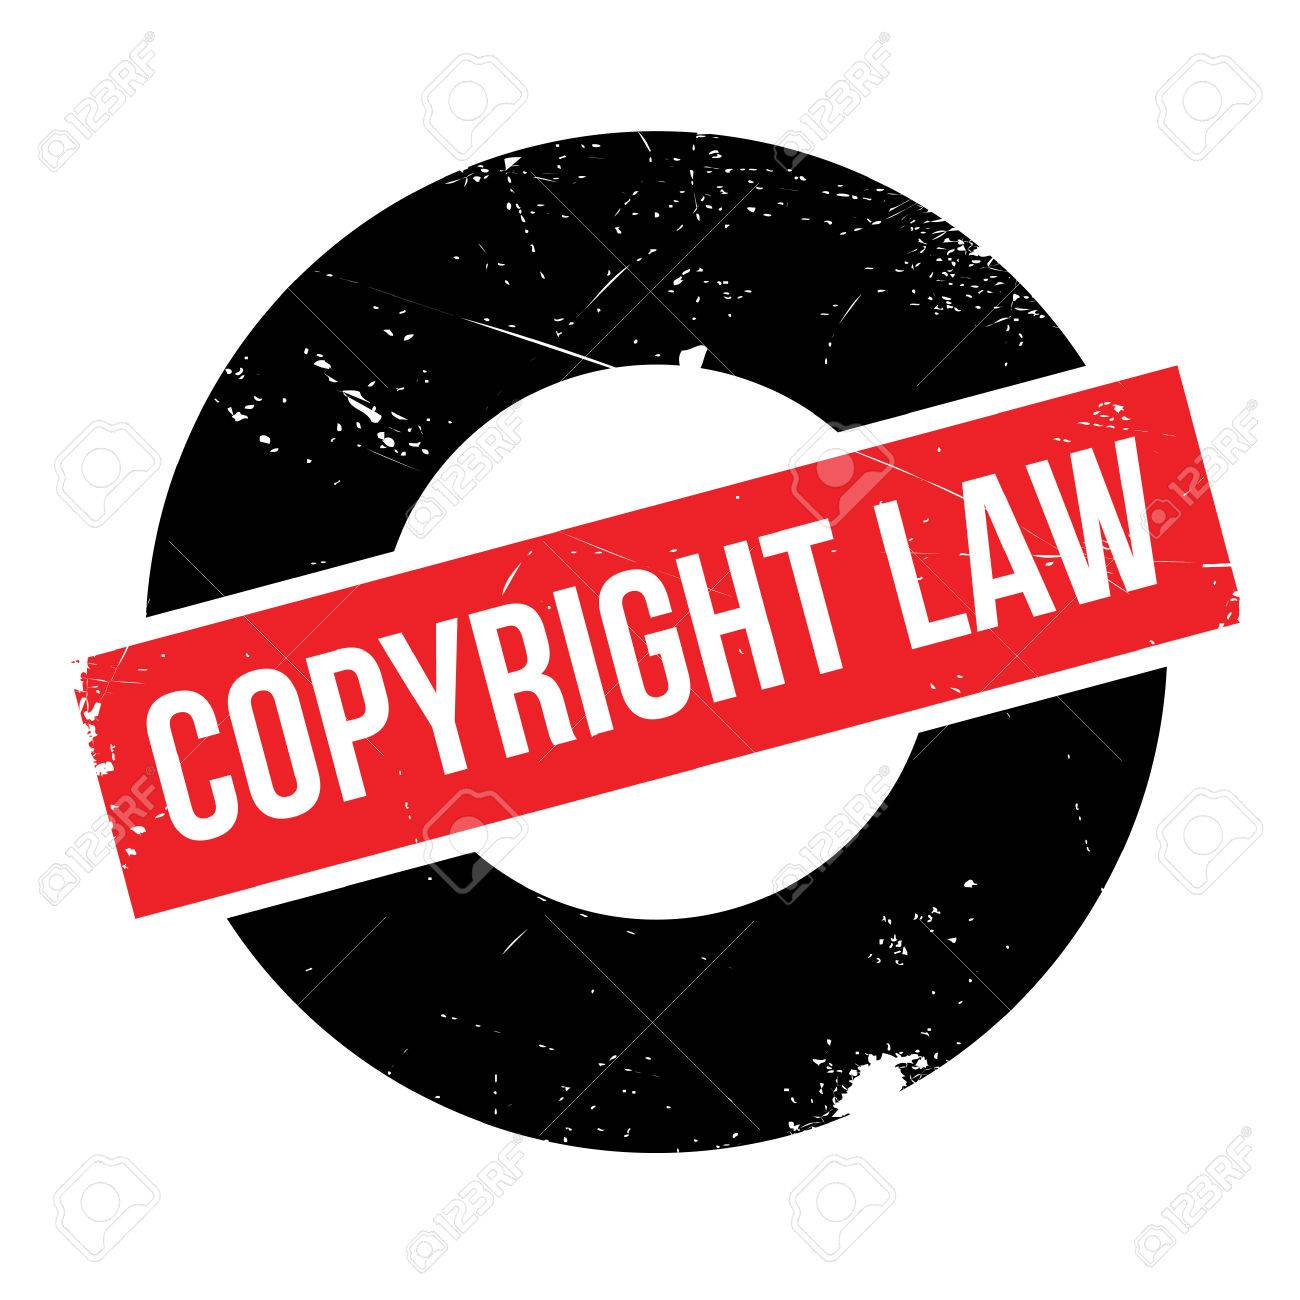 China Making Improvements in Copyright Protection